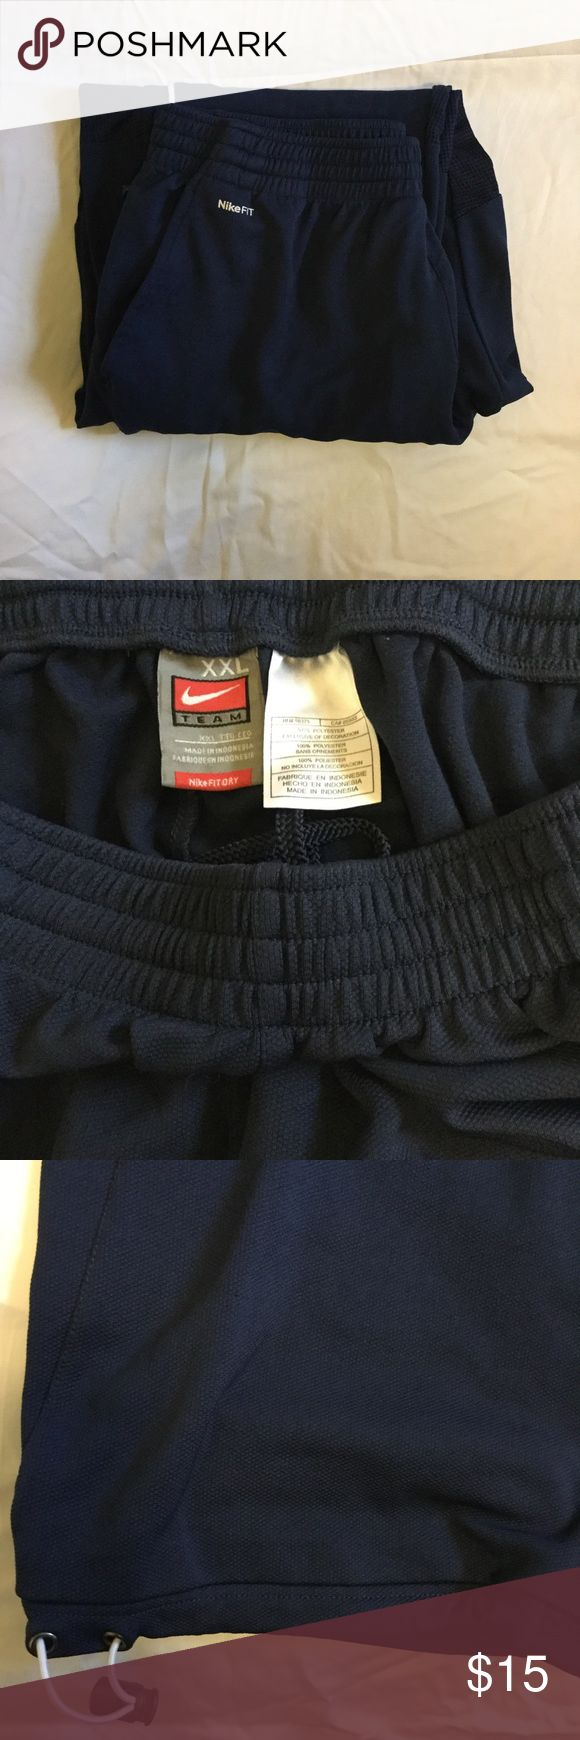 Men's Nike Sweatpants. Navy blue and white Nike Sweatpants. Super comfortable. Drawstring at the bottom. Good condition. Offers welcome. Nike Pants Sweatpants & Joggers